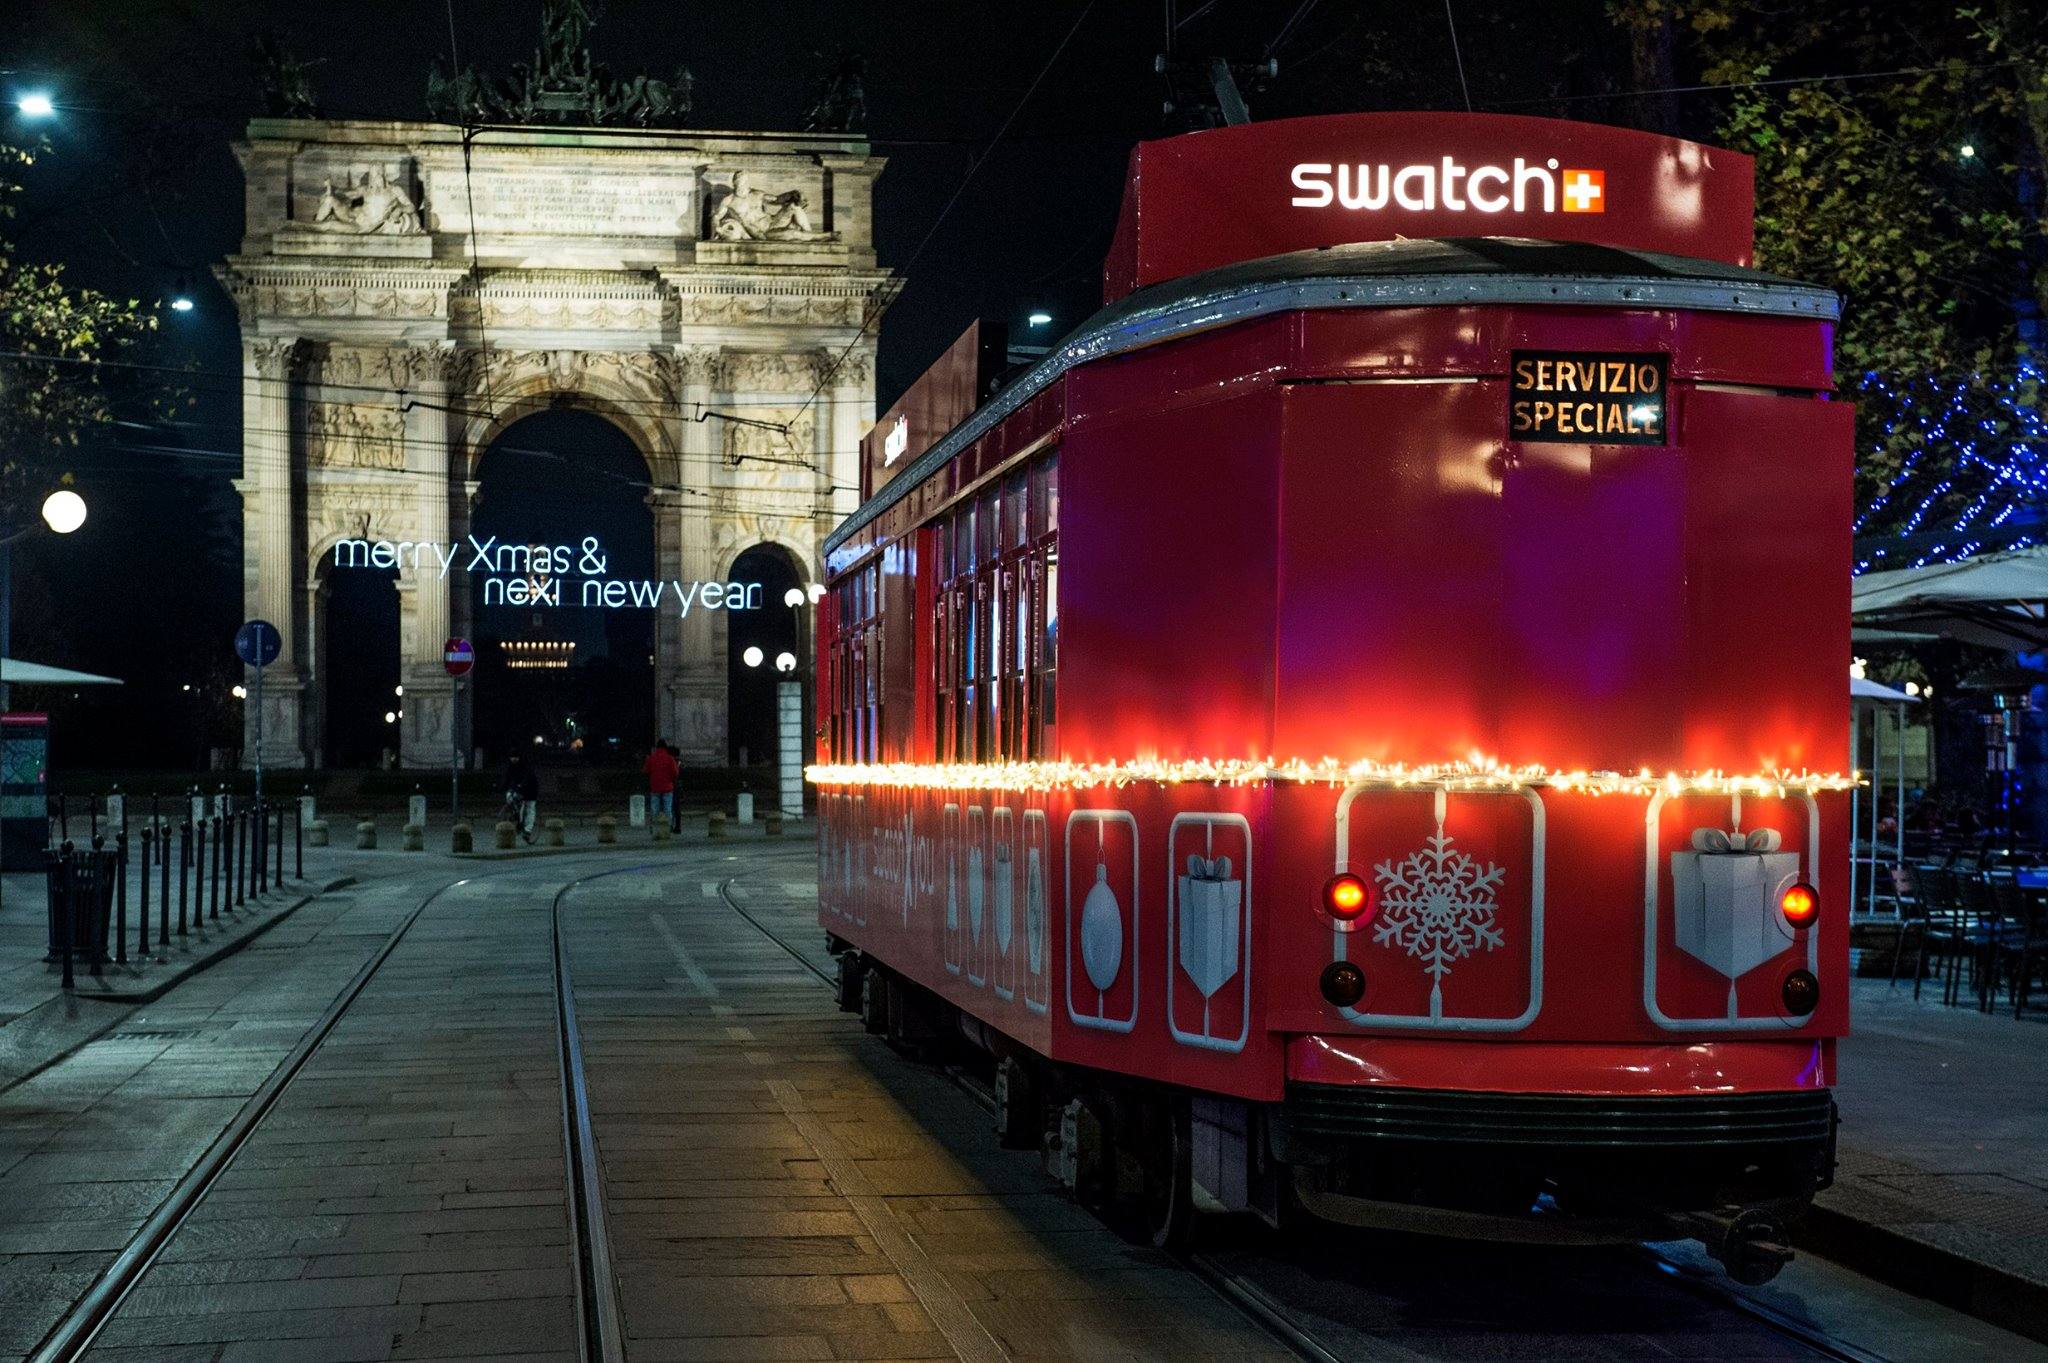 Tram Swatch Milano